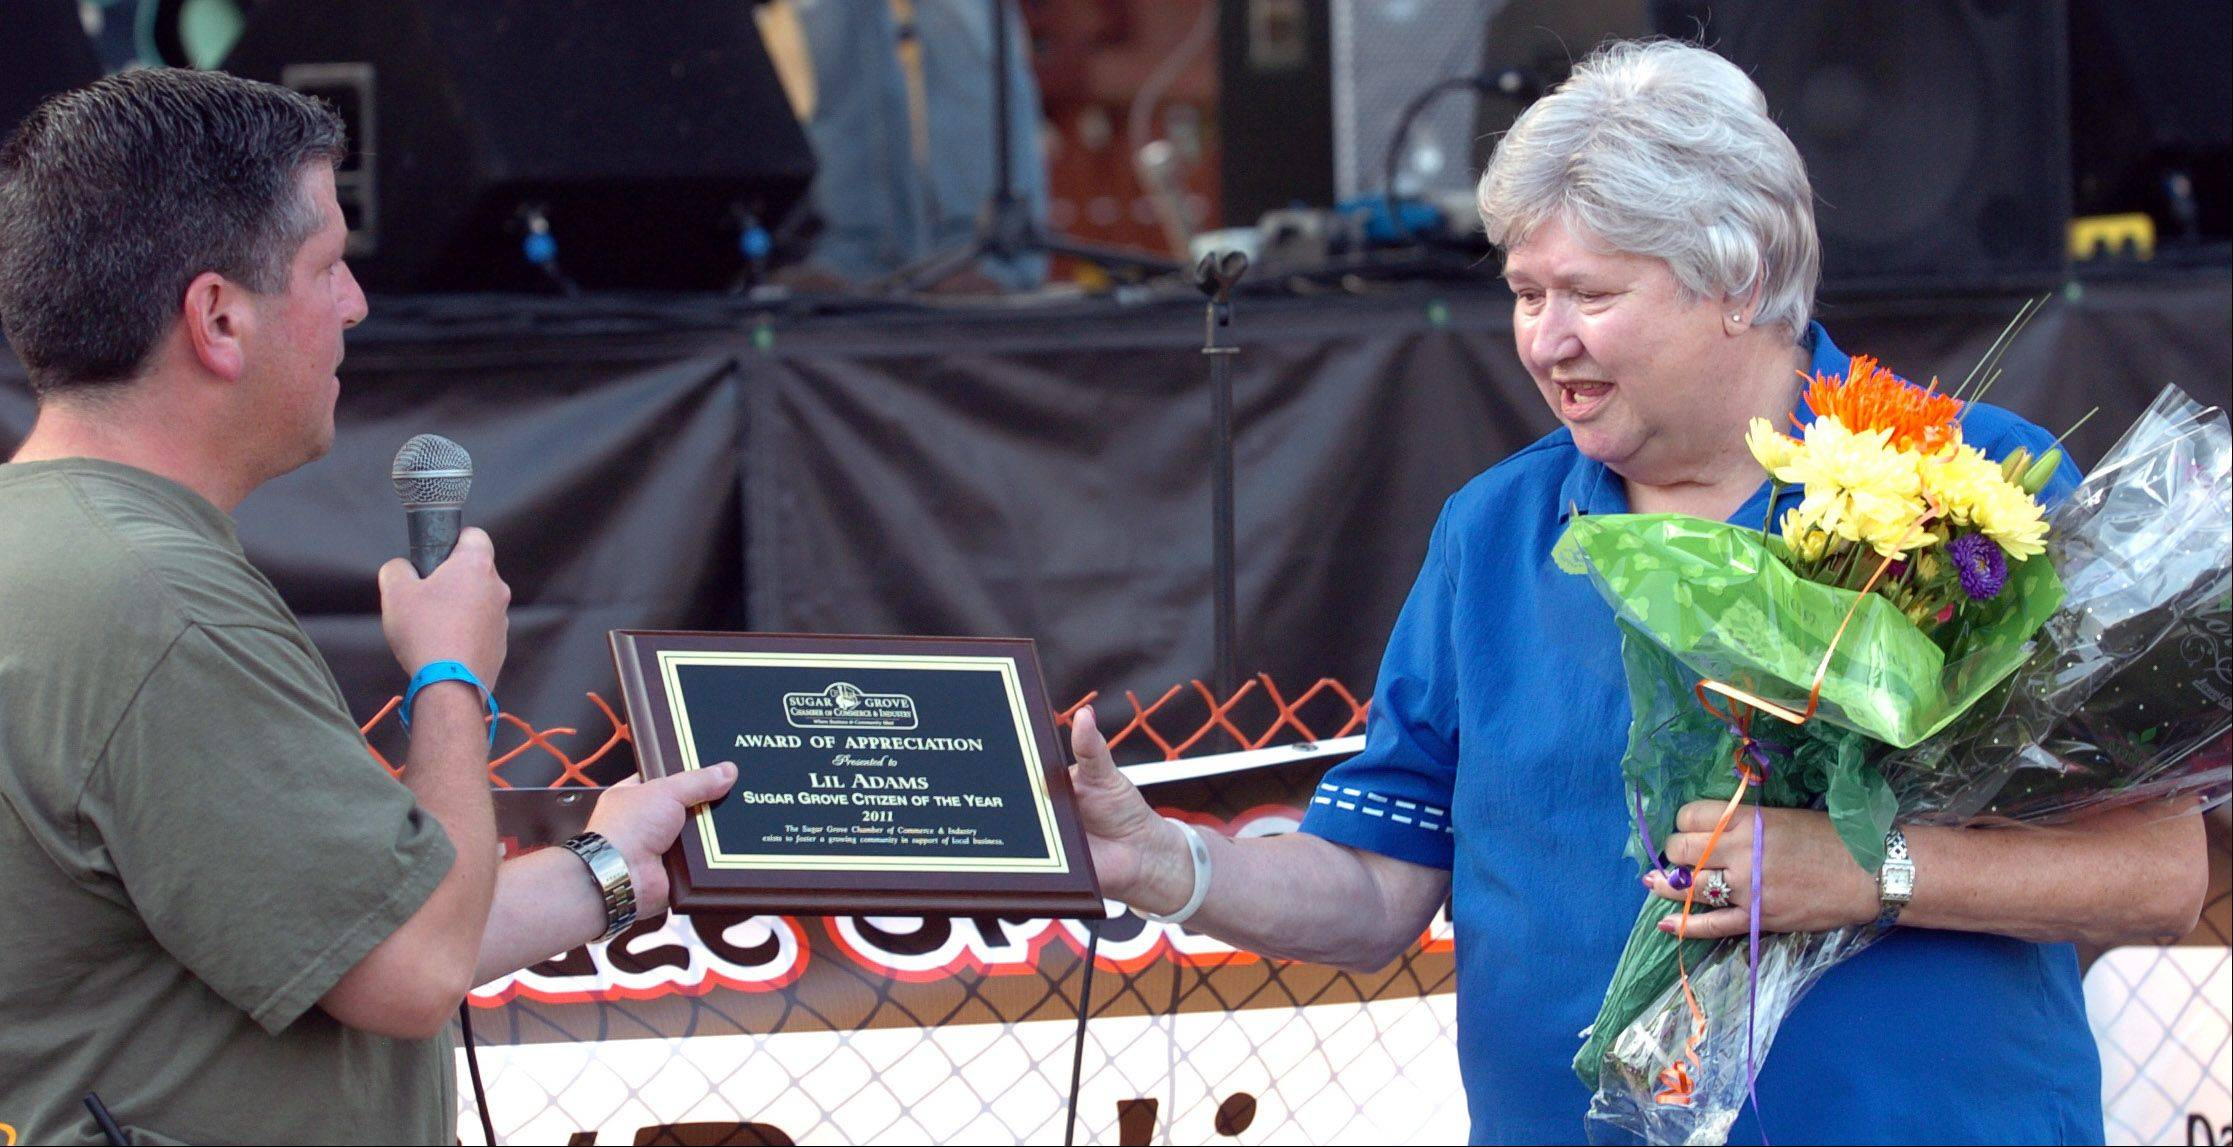 Kristin Ackmann/kackmann@dailyherald.comPresident of the Sugar Grove Chamber of Commerce and Industry, Steve Eekker, awarded Lil Adams the Sugar Grove Citizen of the Year plaque, at the Sugar Grove Corn Boil on Friday. Lil has been a resident of Sugar Grove for forty-four years, and runs the Sugar Grove Township Community House voluntarily.